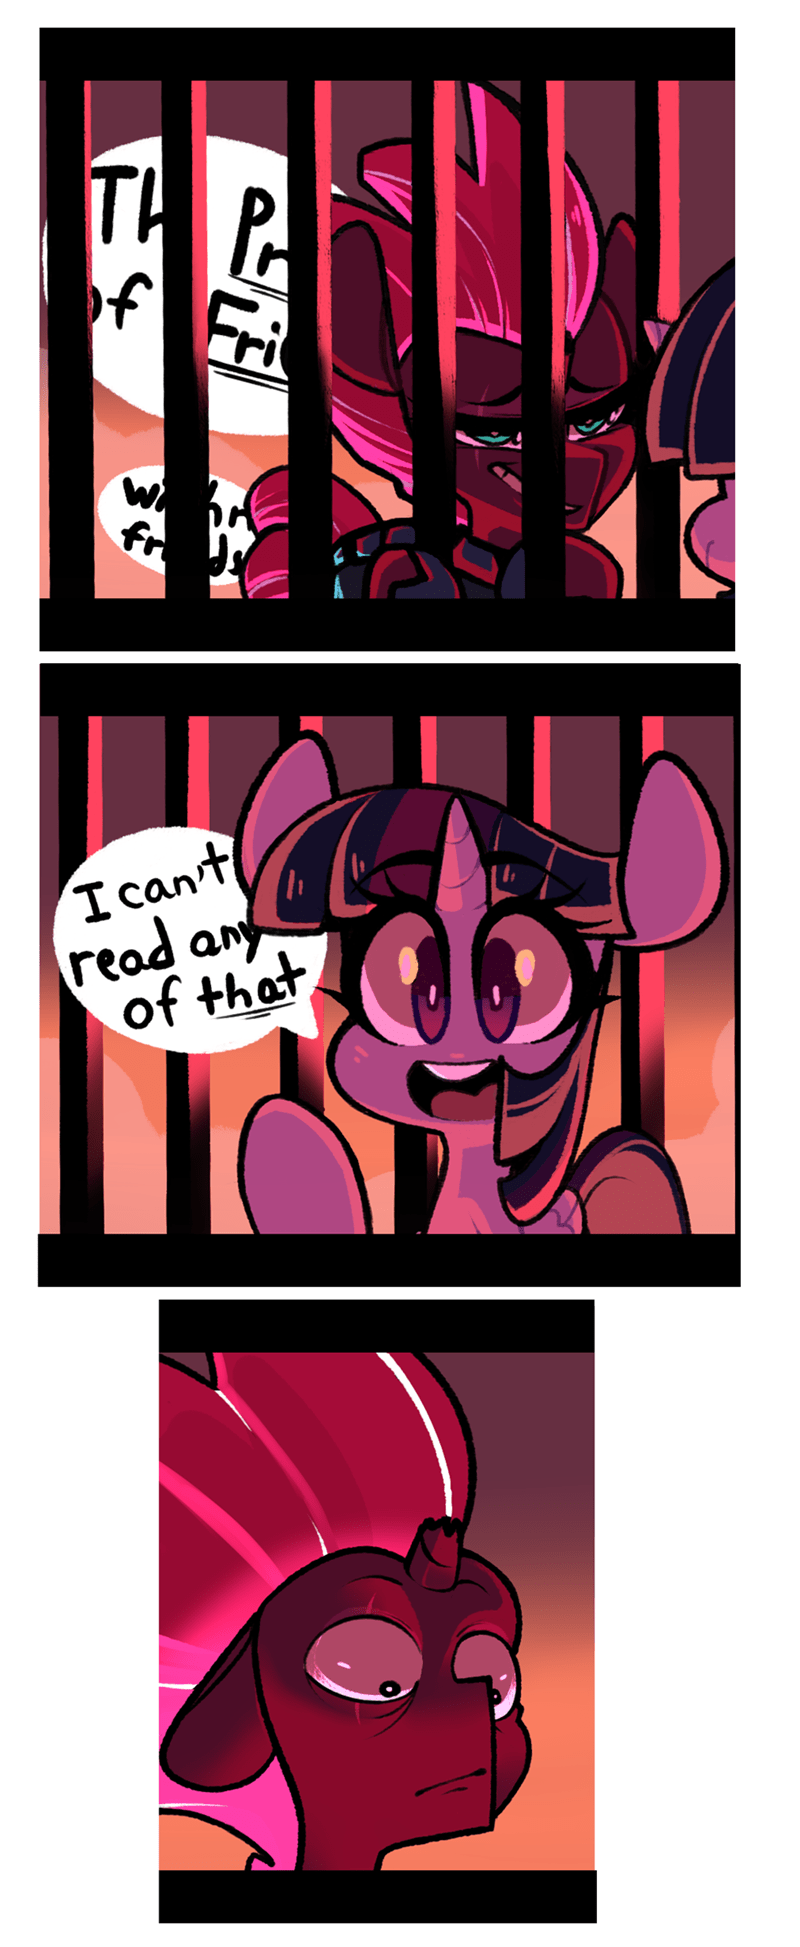 tempest shadow my little pony the movie twilight sparkle comic sour spot - 9203023104